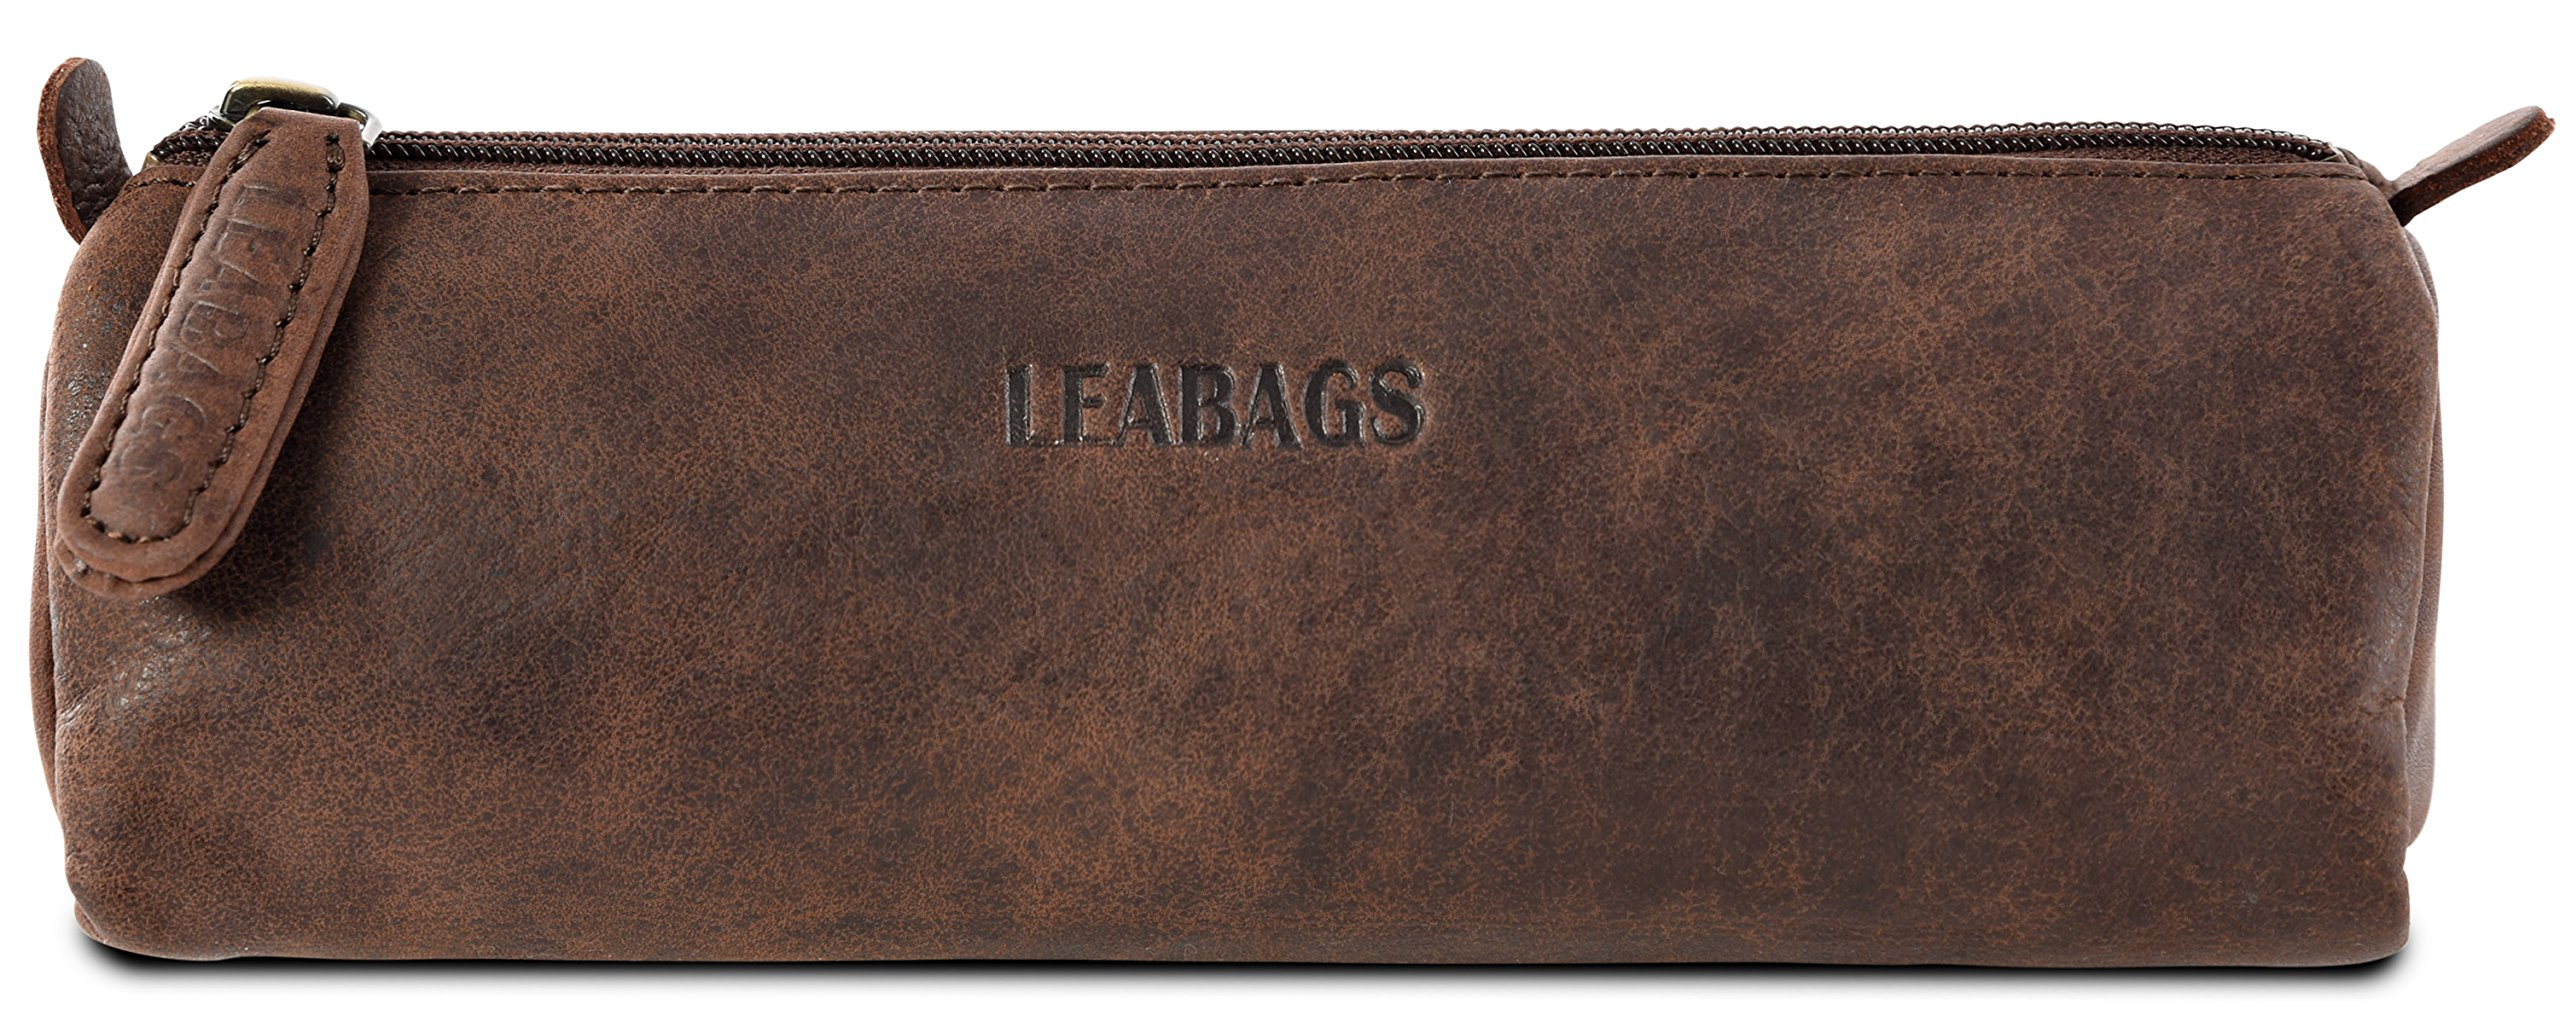 LEABAGS Fort Lauderdale genuine buffalo leather pencil holder in vintage style - Nutmeg